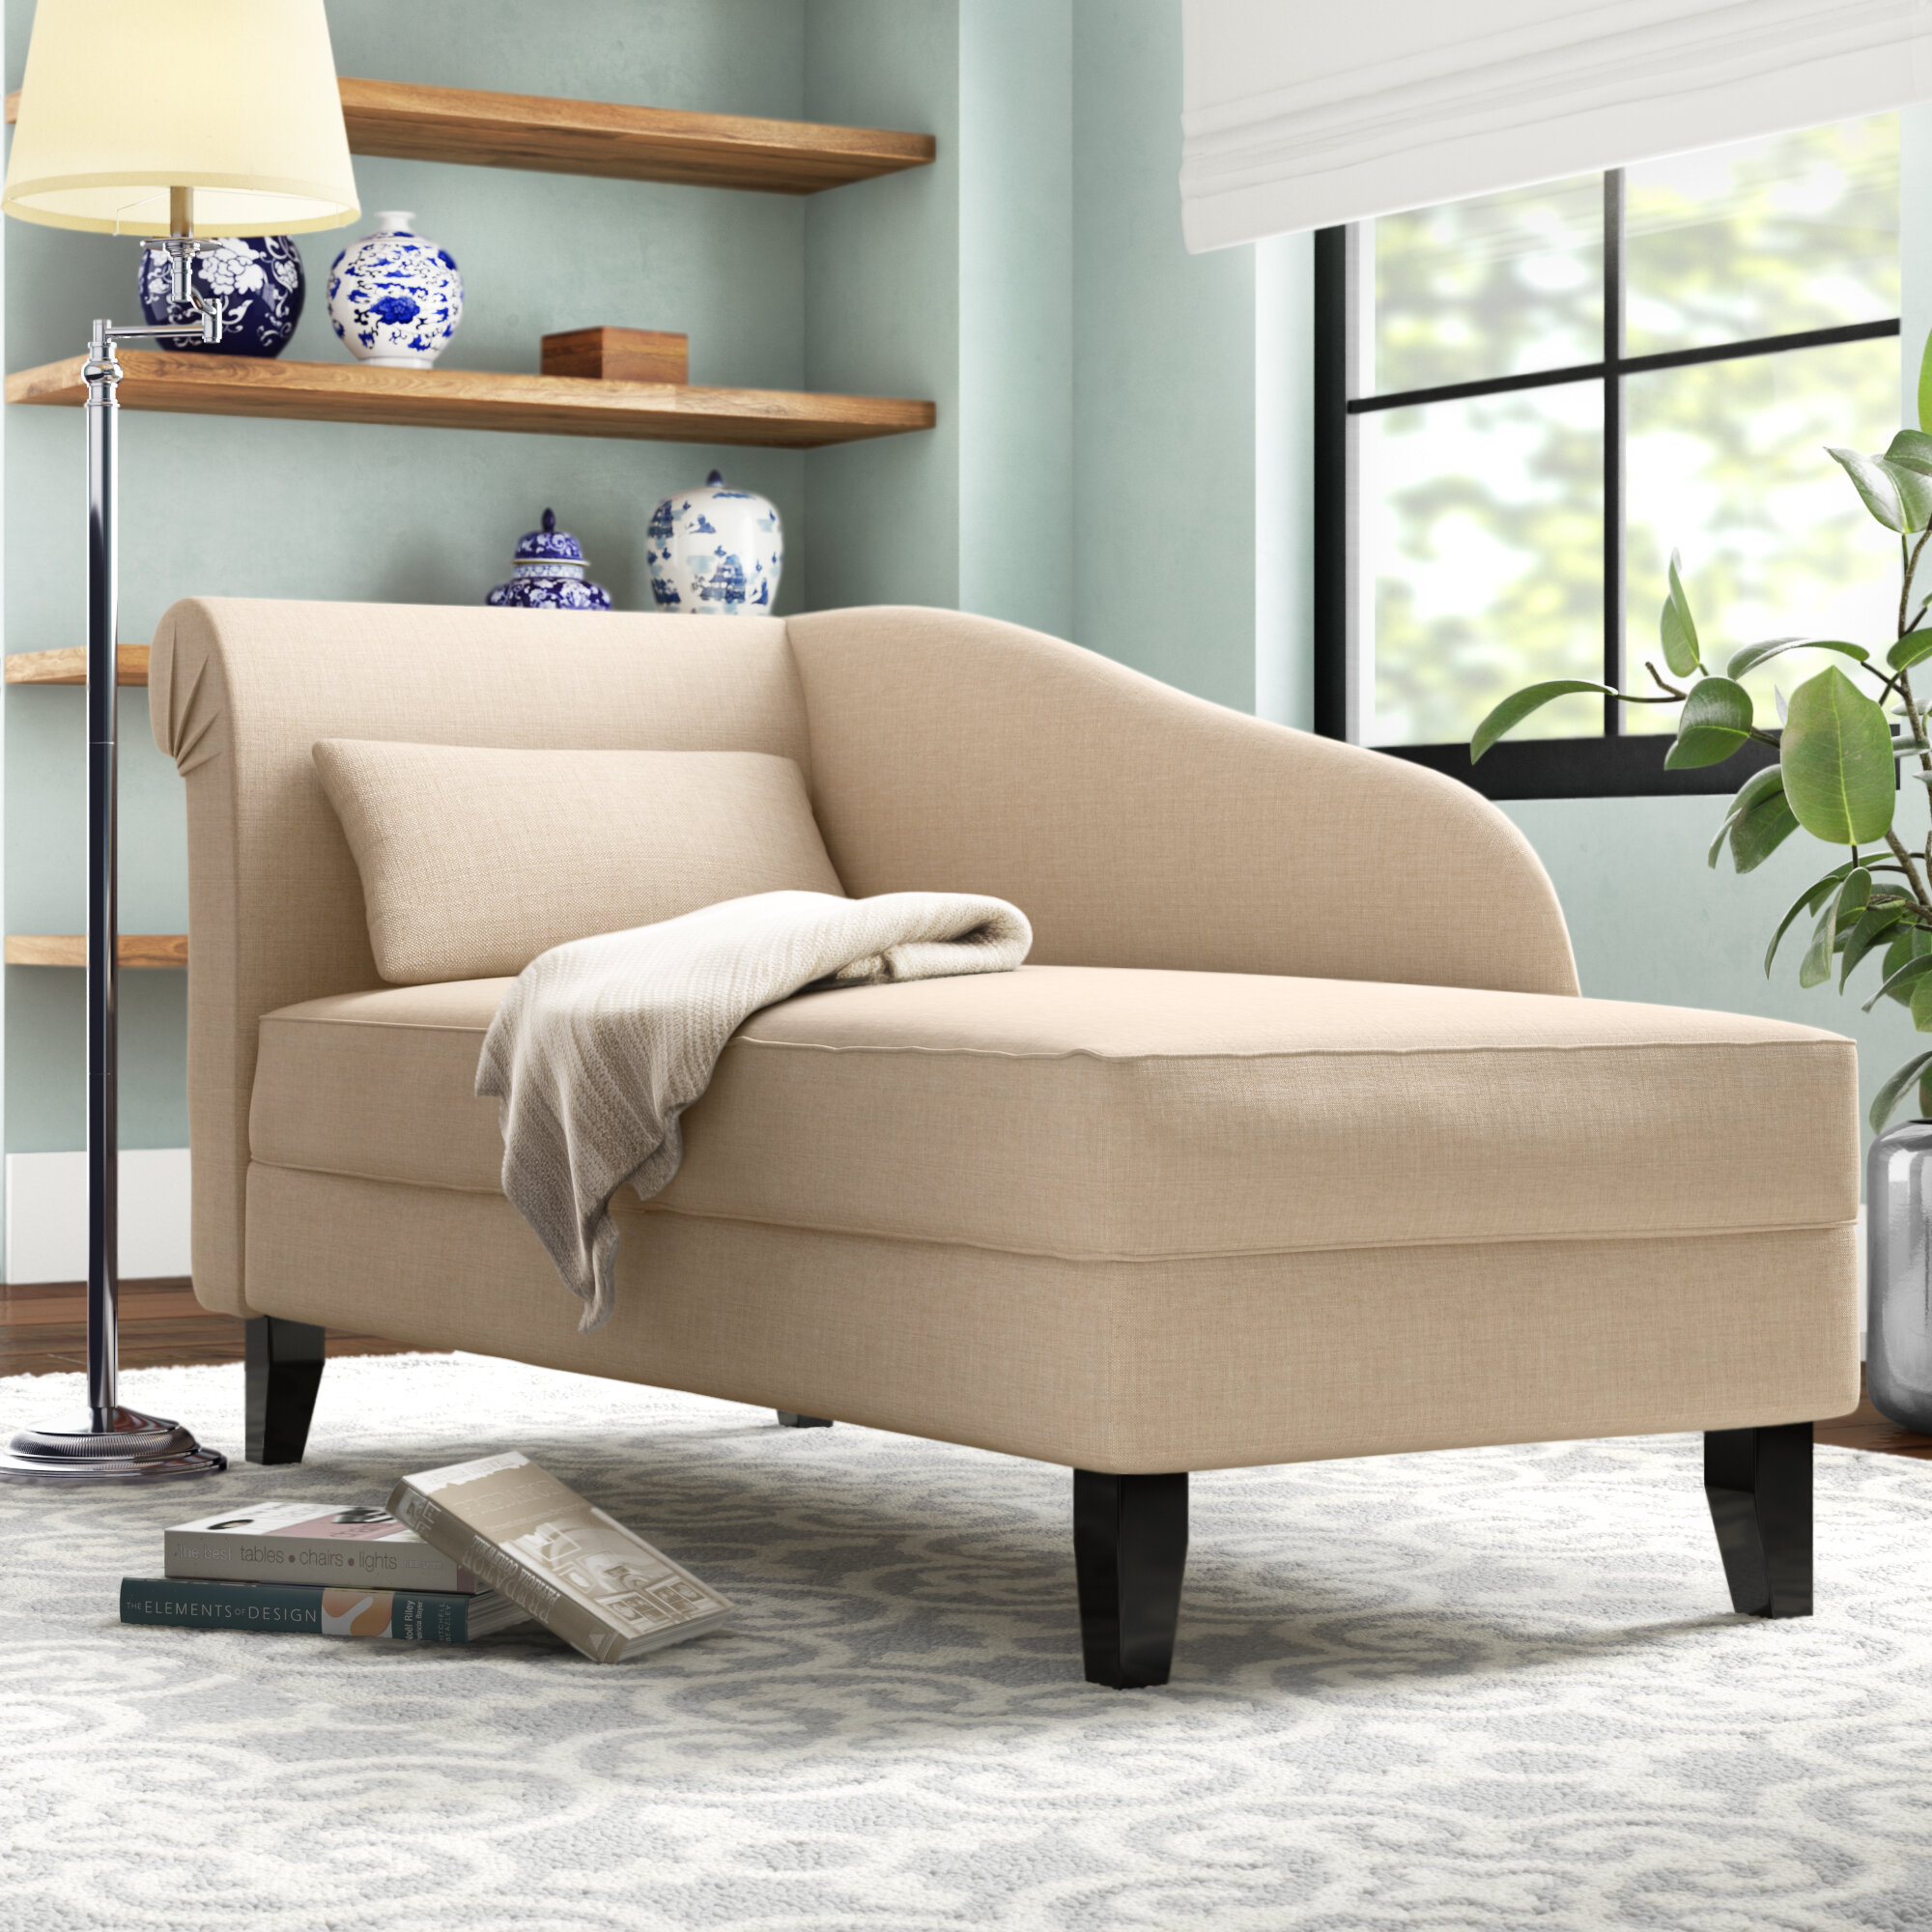 Chaise longue for newborns: reviews and features